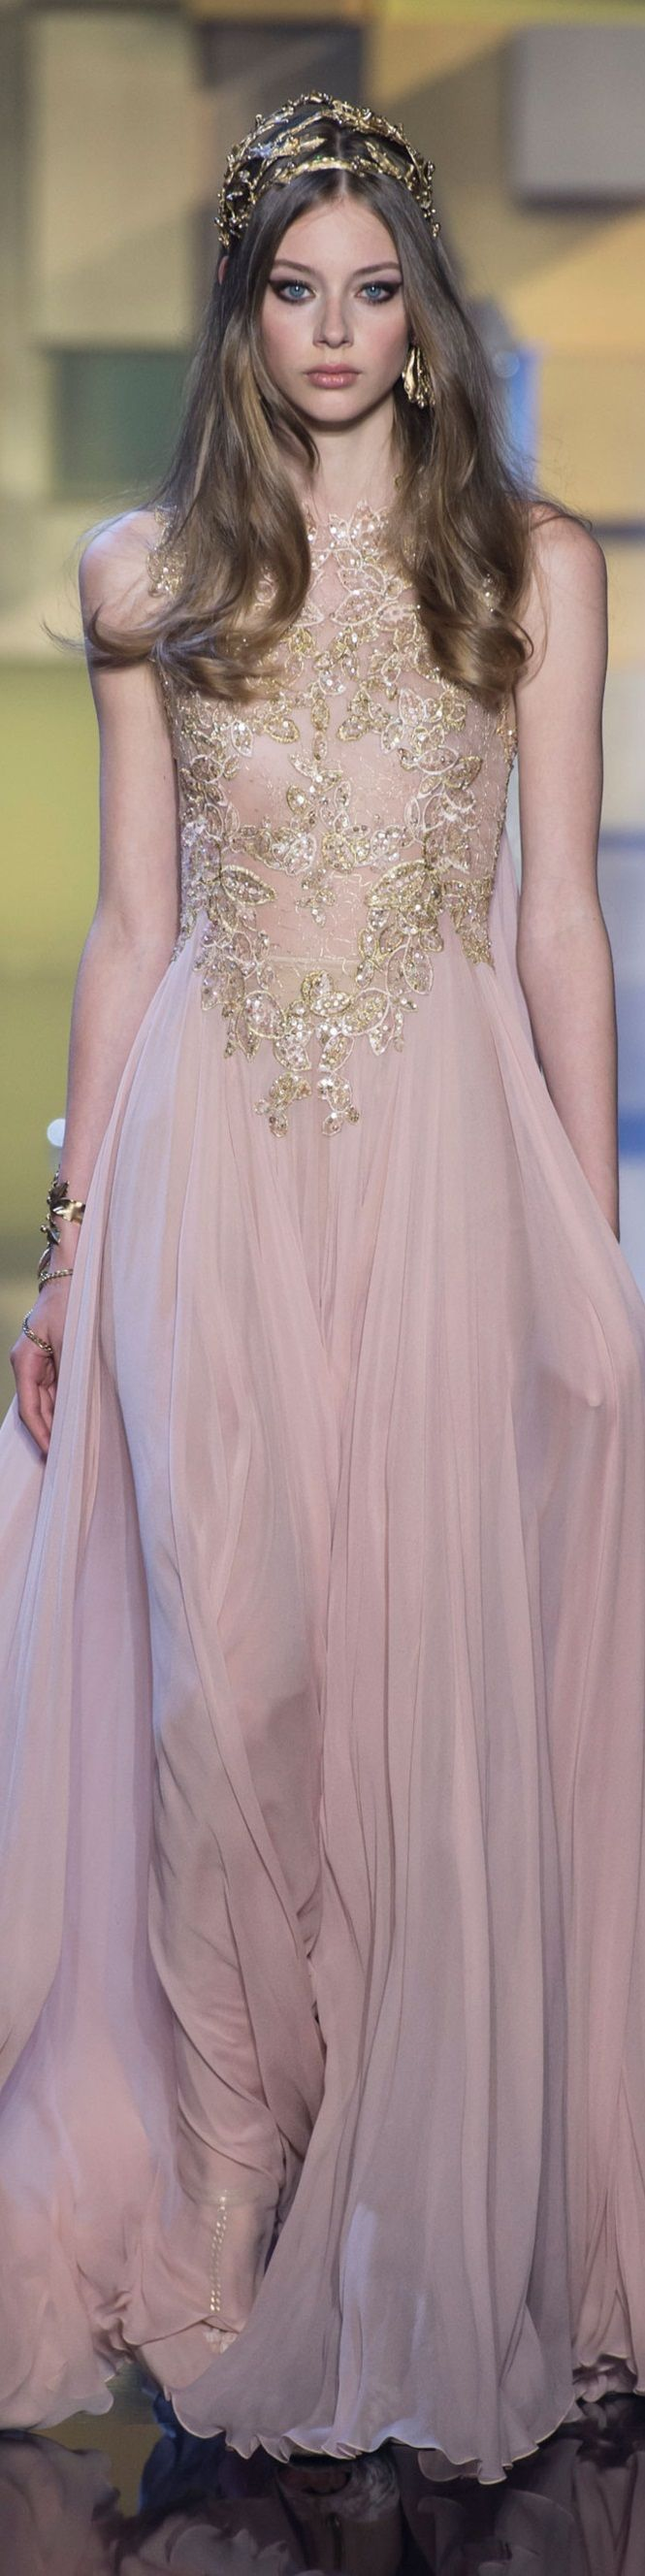 Elie Saab ~ Couture Soft Pink Gown w Gold + Crystal Embellishment ...